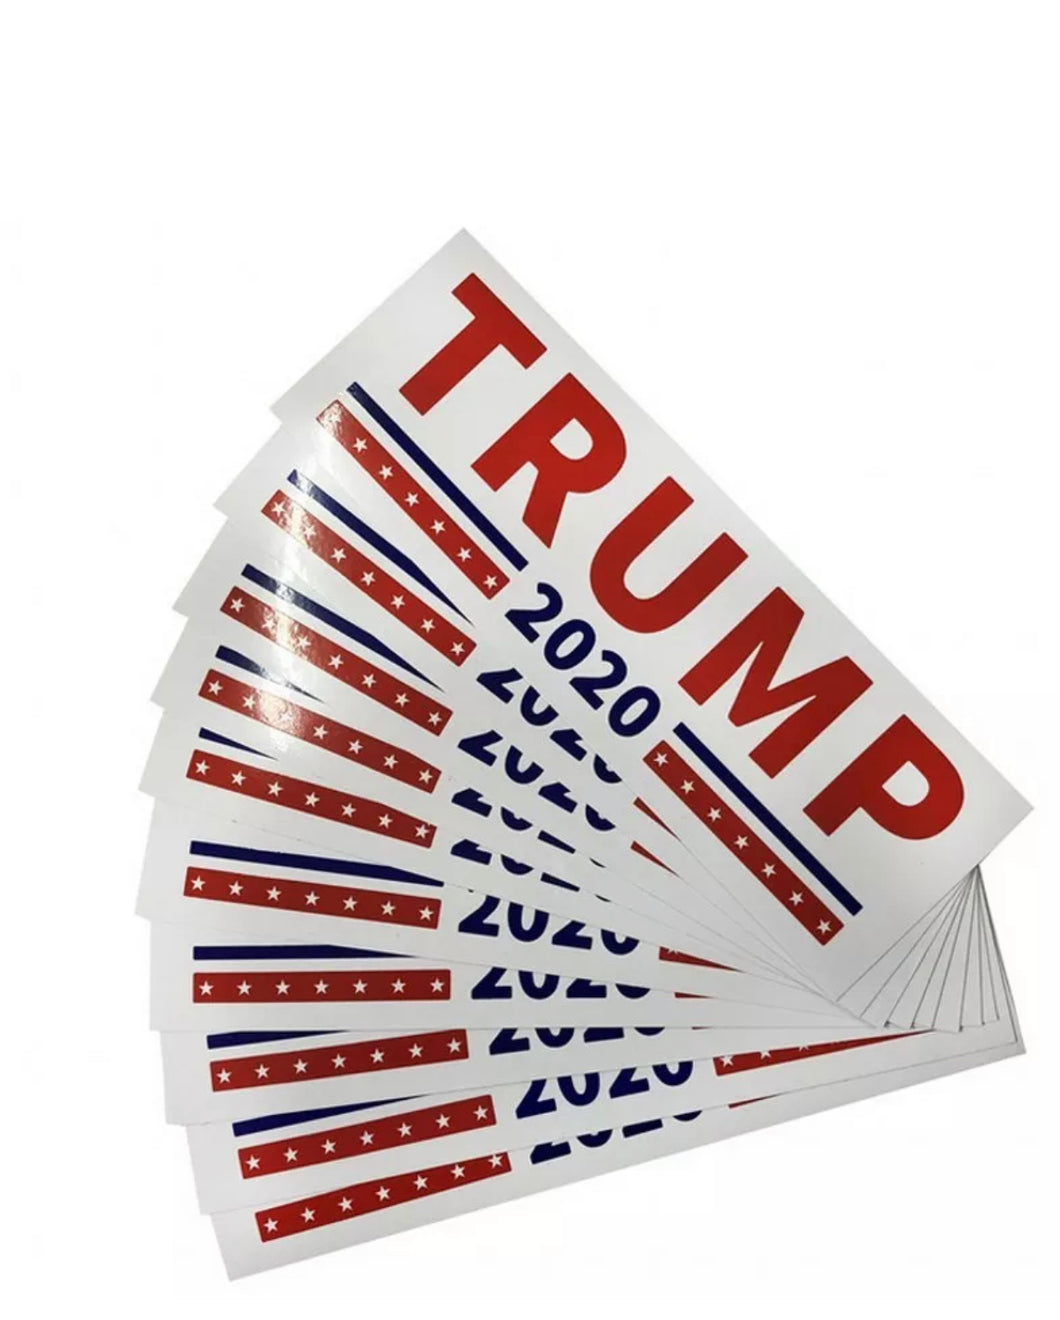 Trump 2020 Bumper Stickers 100 Pack (Free Shipping)